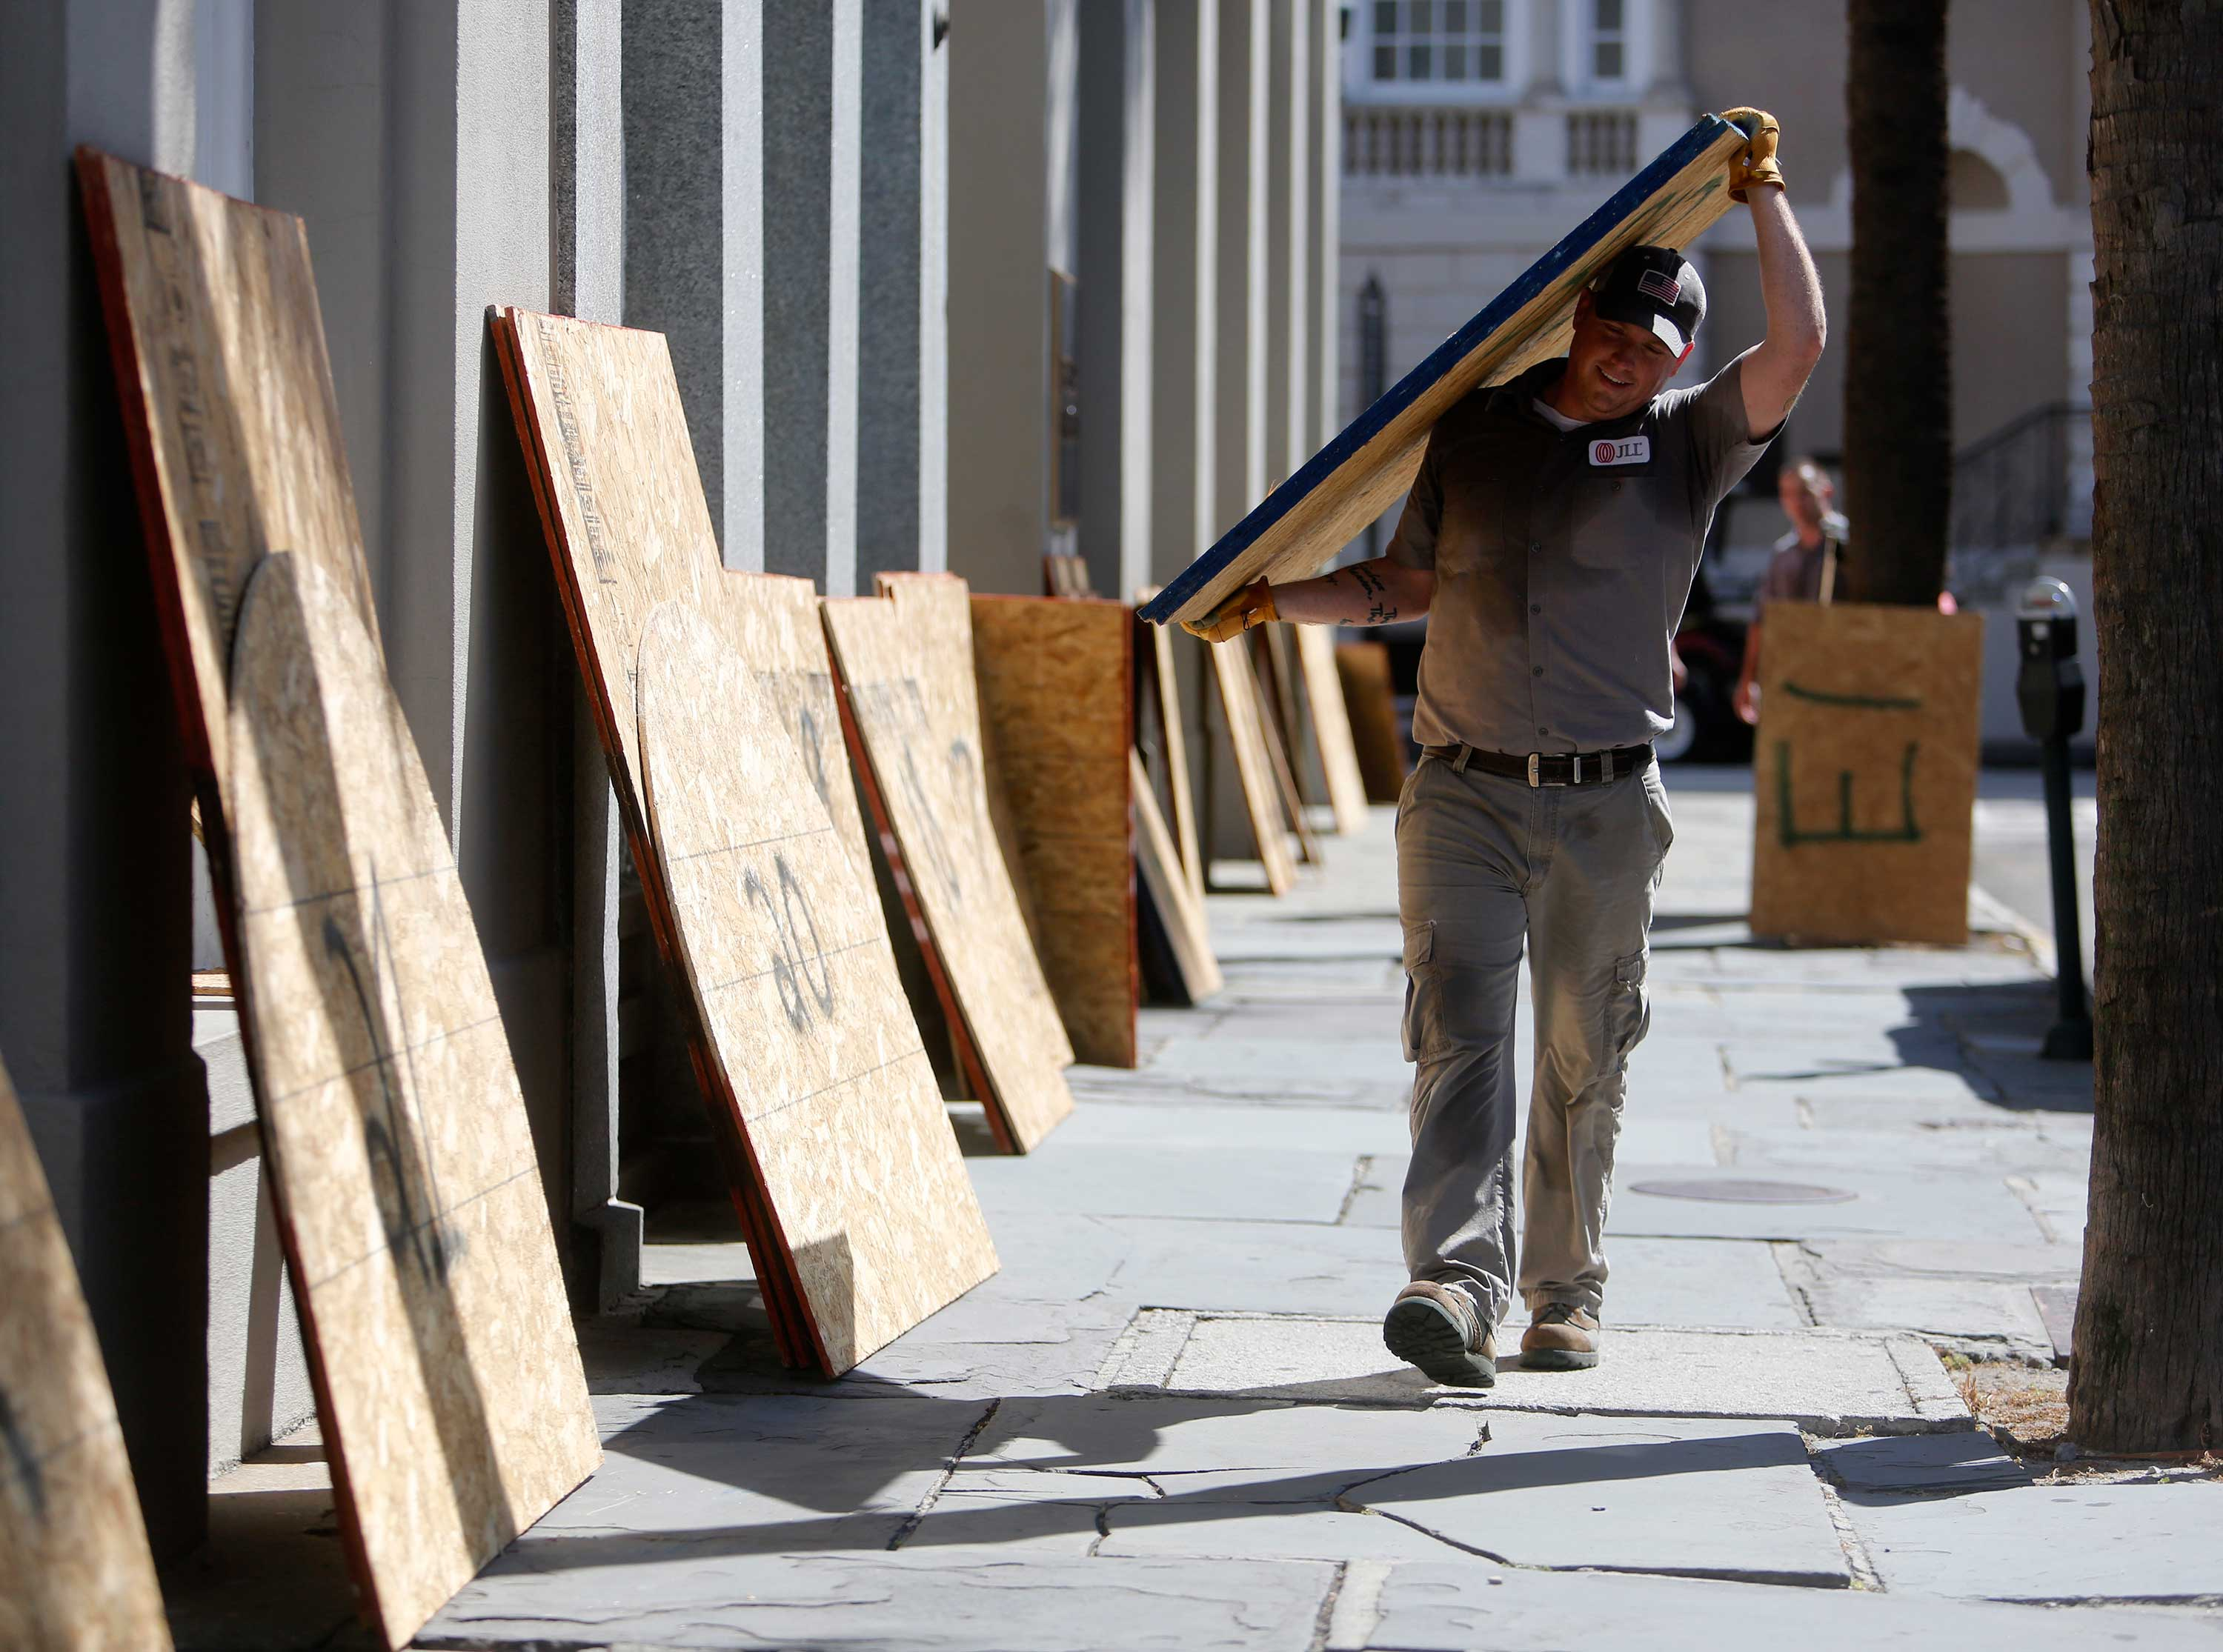 <div class='meta'><div class='origin-logo' data-origin='none'></div><span class='caption-text' data-credit='Mic Smith/AP Photo'>Preston Guiher carries a sheet of plywood as he prepares to board up a Wells Fargo bank in preparation for Hurricane Florence in downtown Charleston, S.C., Tuesday, Sept. 11, 2018.</span></div>